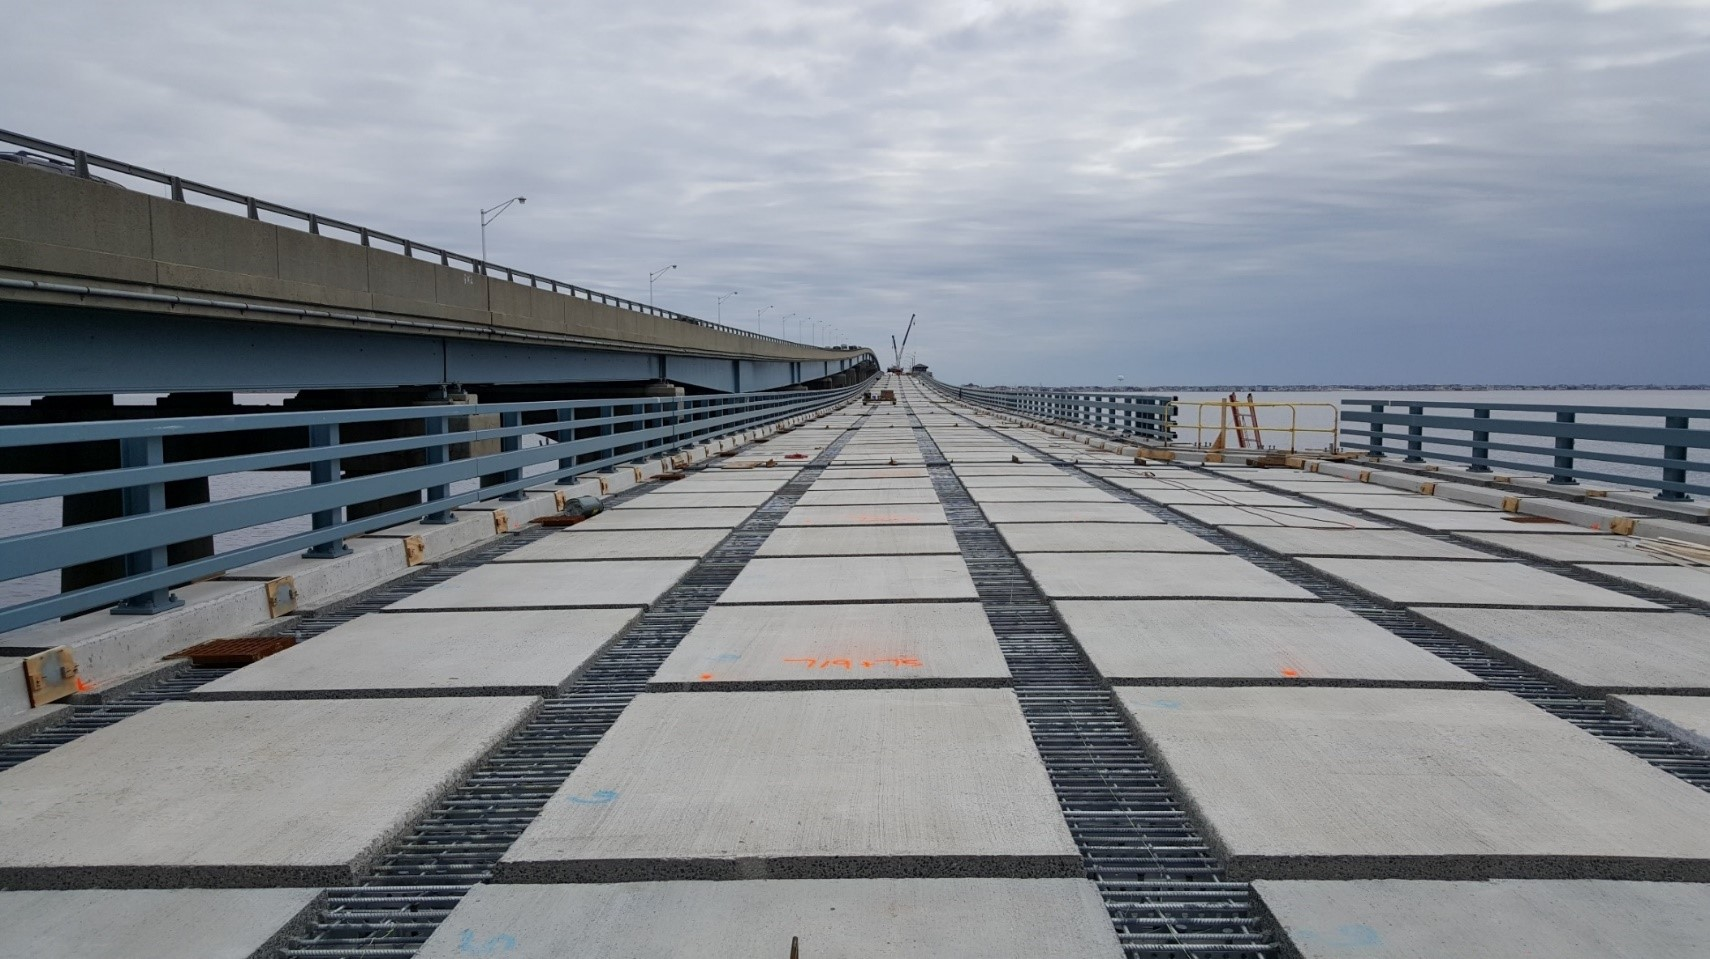 Route 37 EB Mathis Bridge – NJ's Largest Precast Exodermic